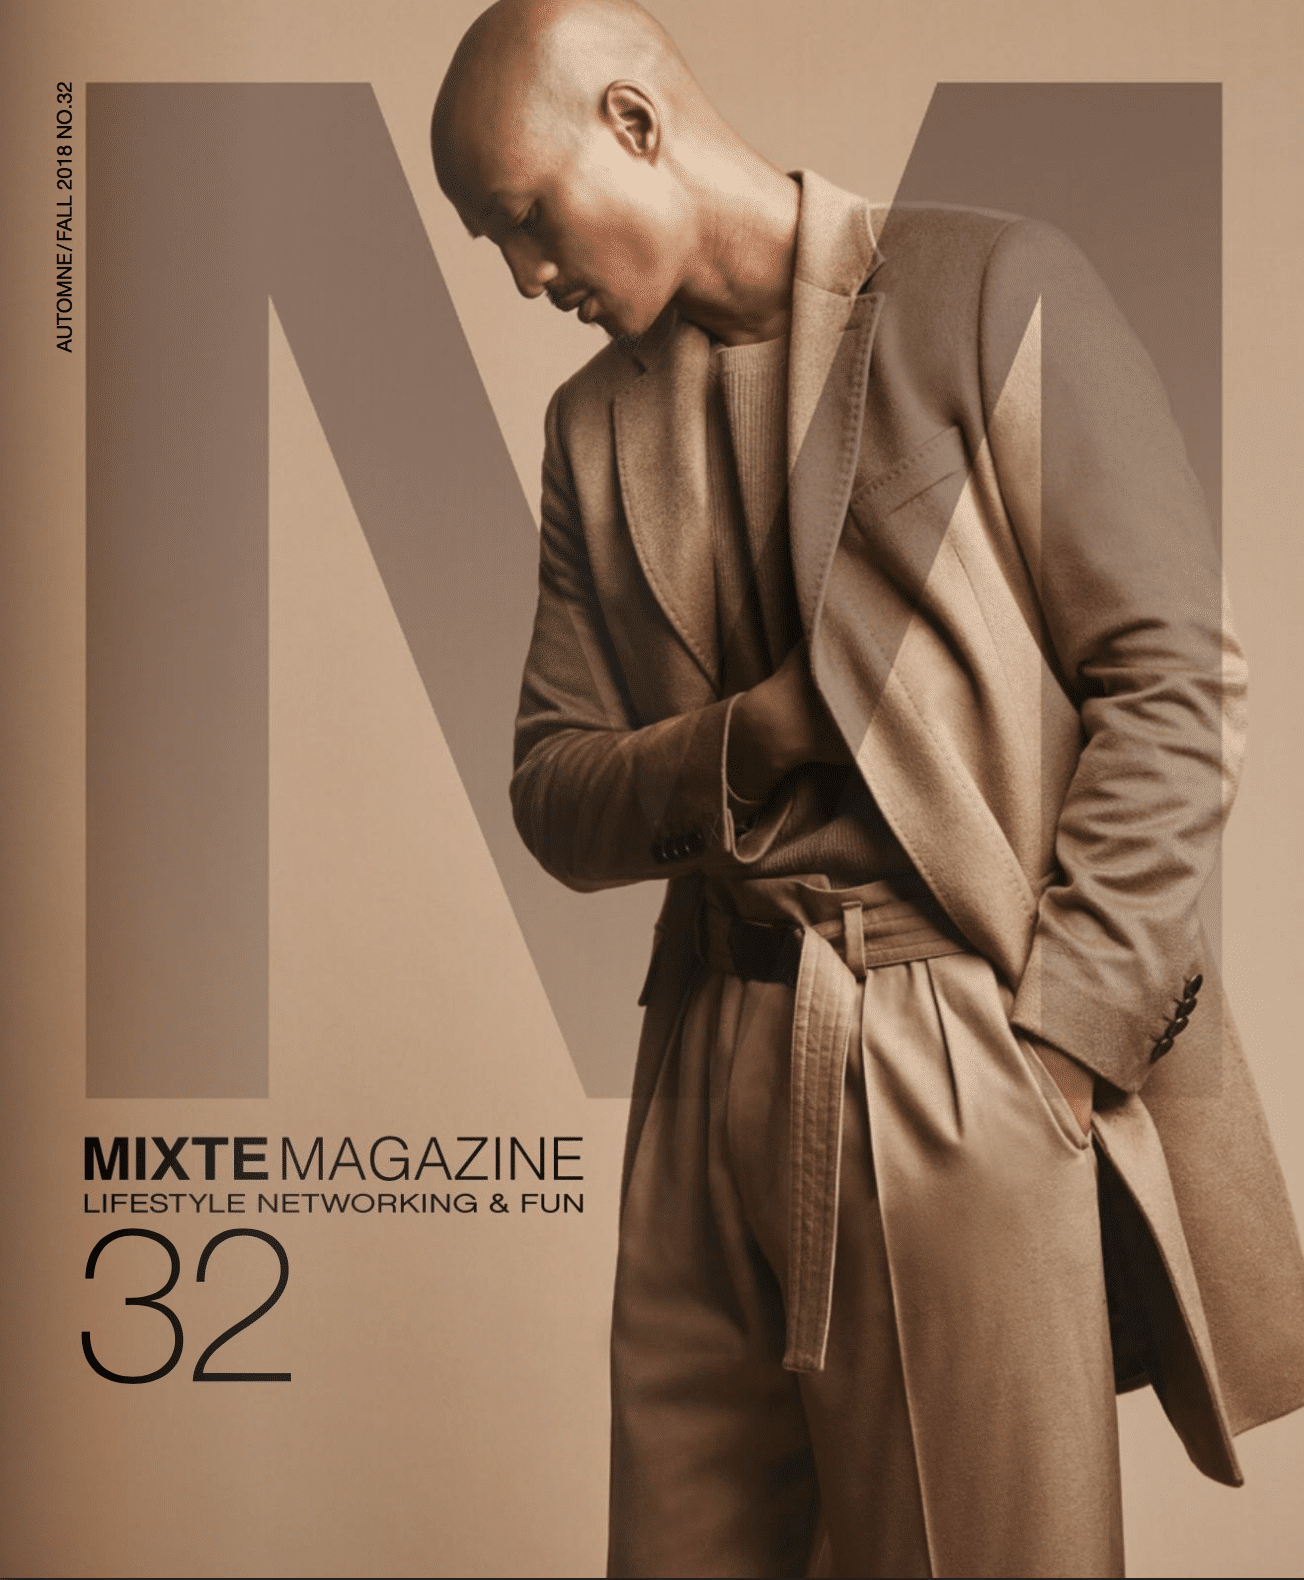 Mixte Magazine Fall 2018 #32